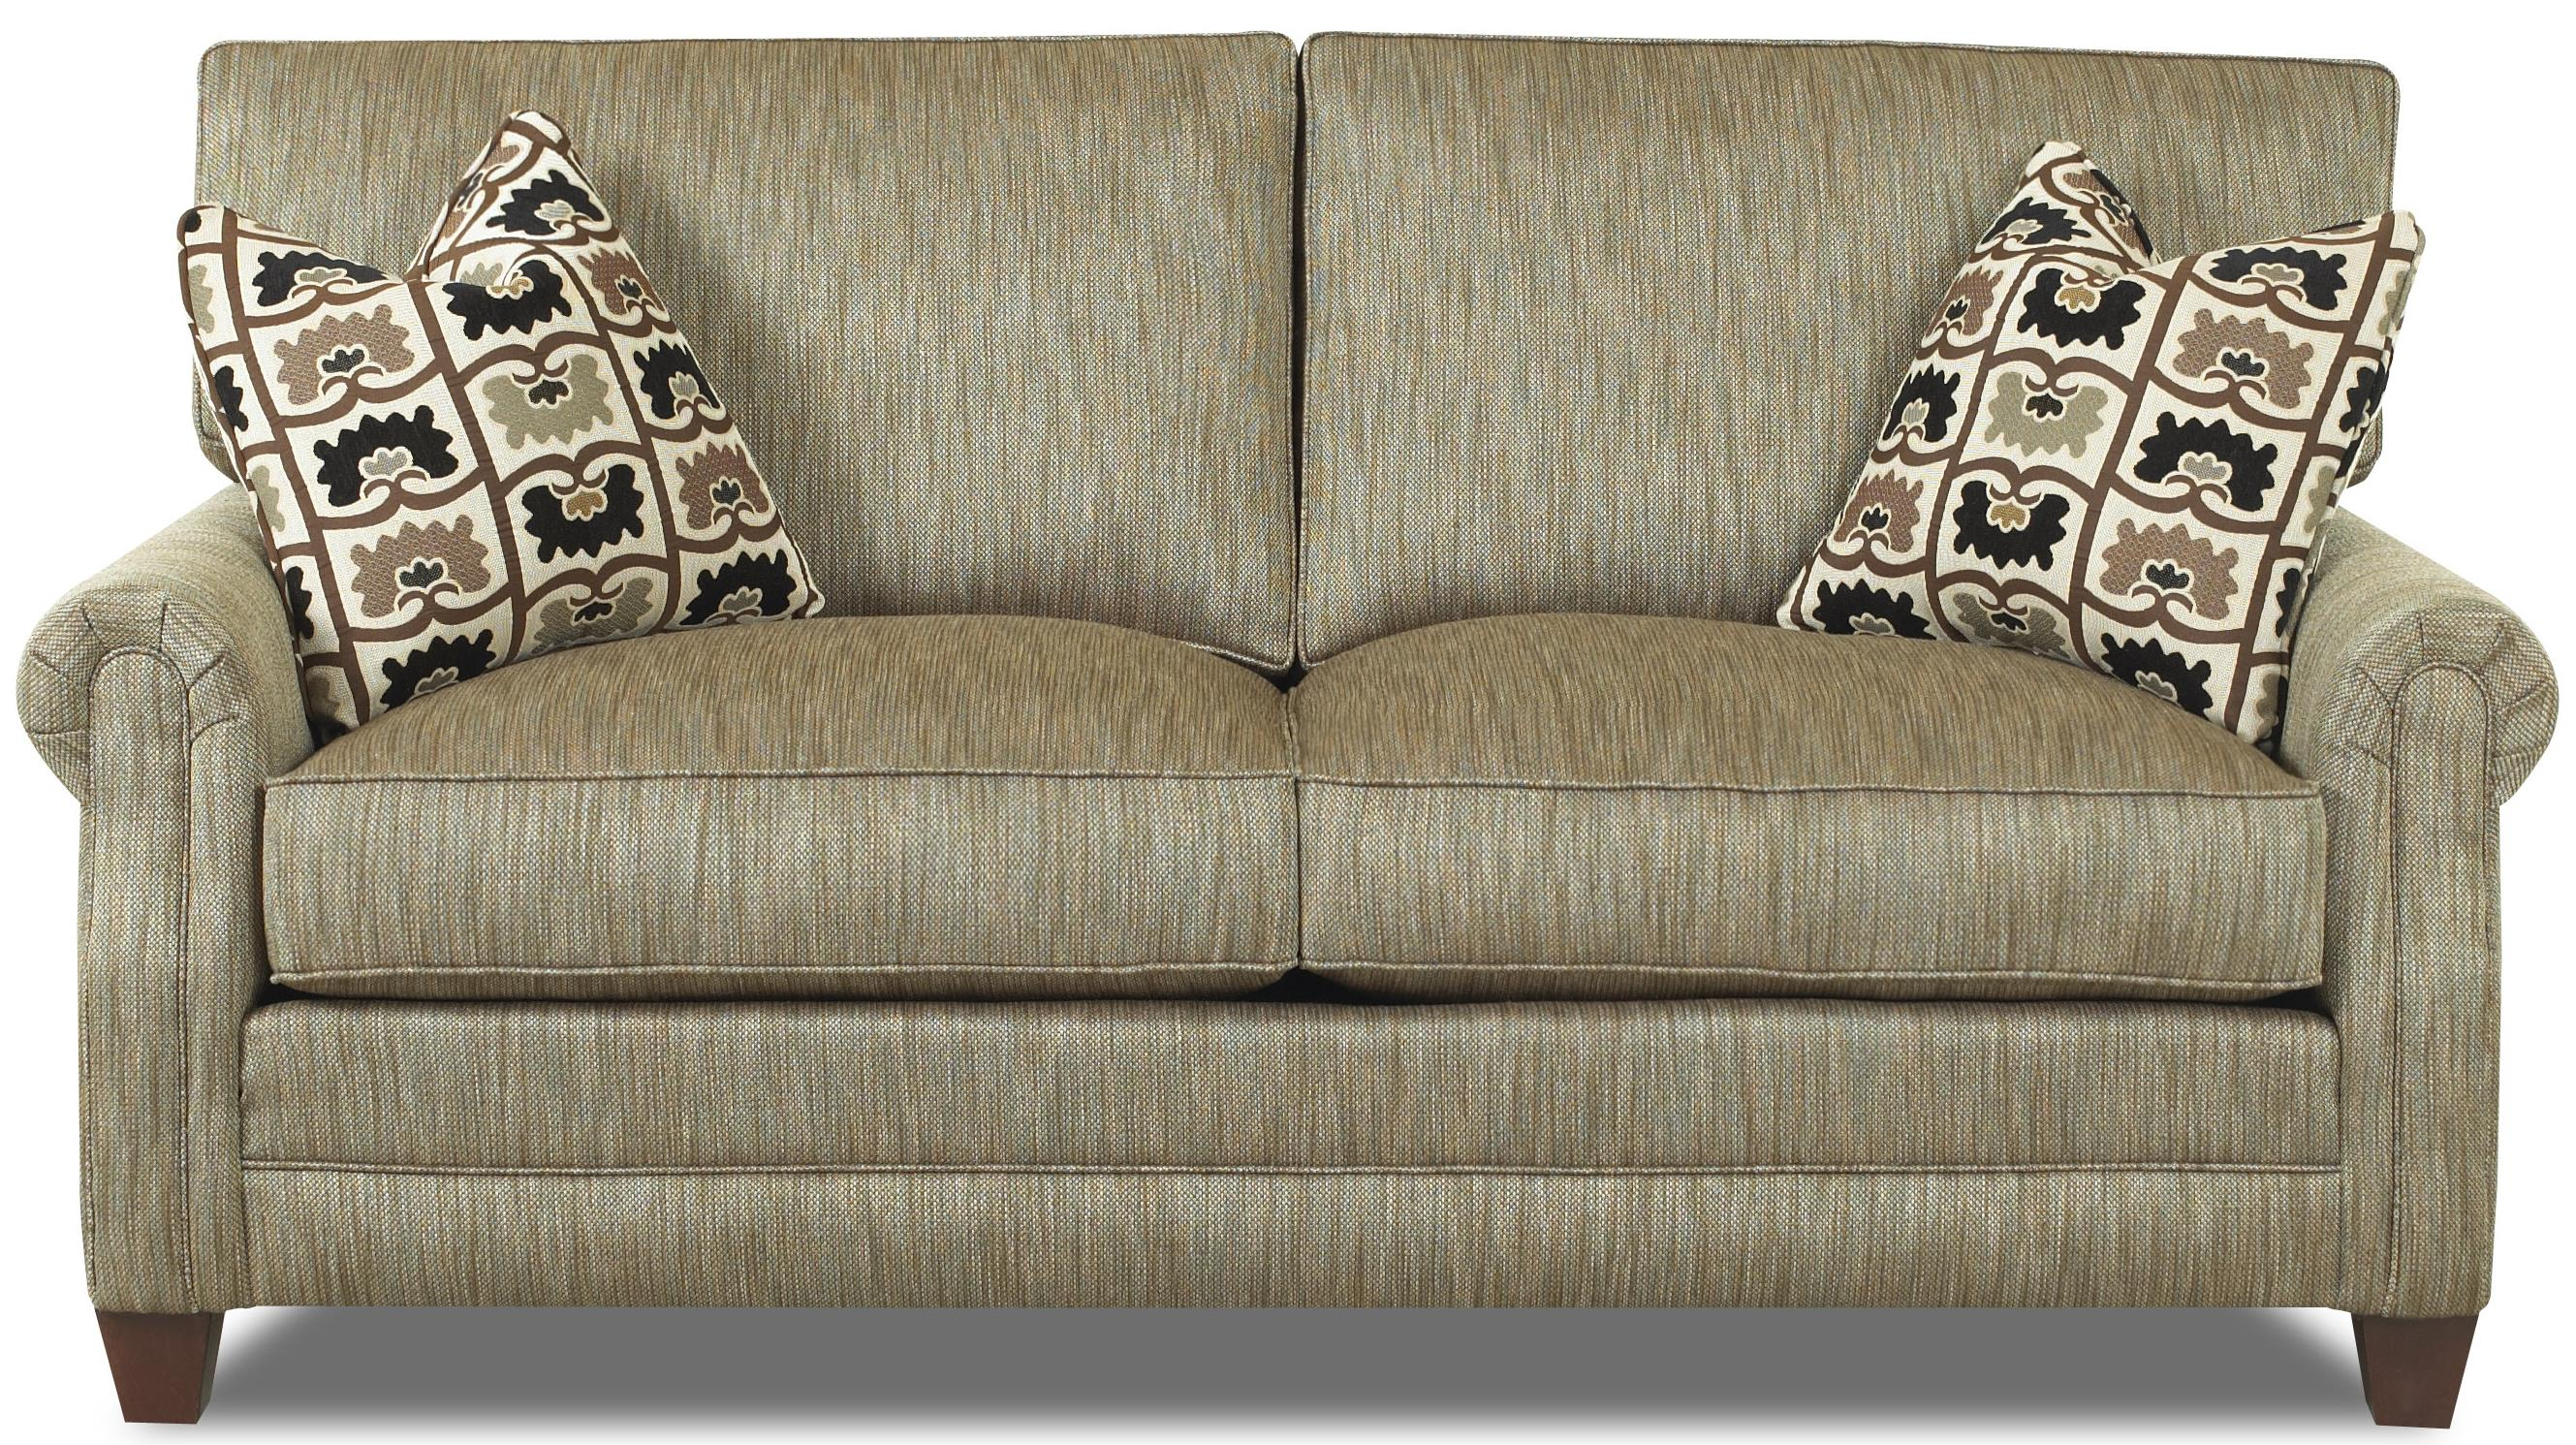 Comfort Design Camelot Love Seat With Exposed Wooden Legs